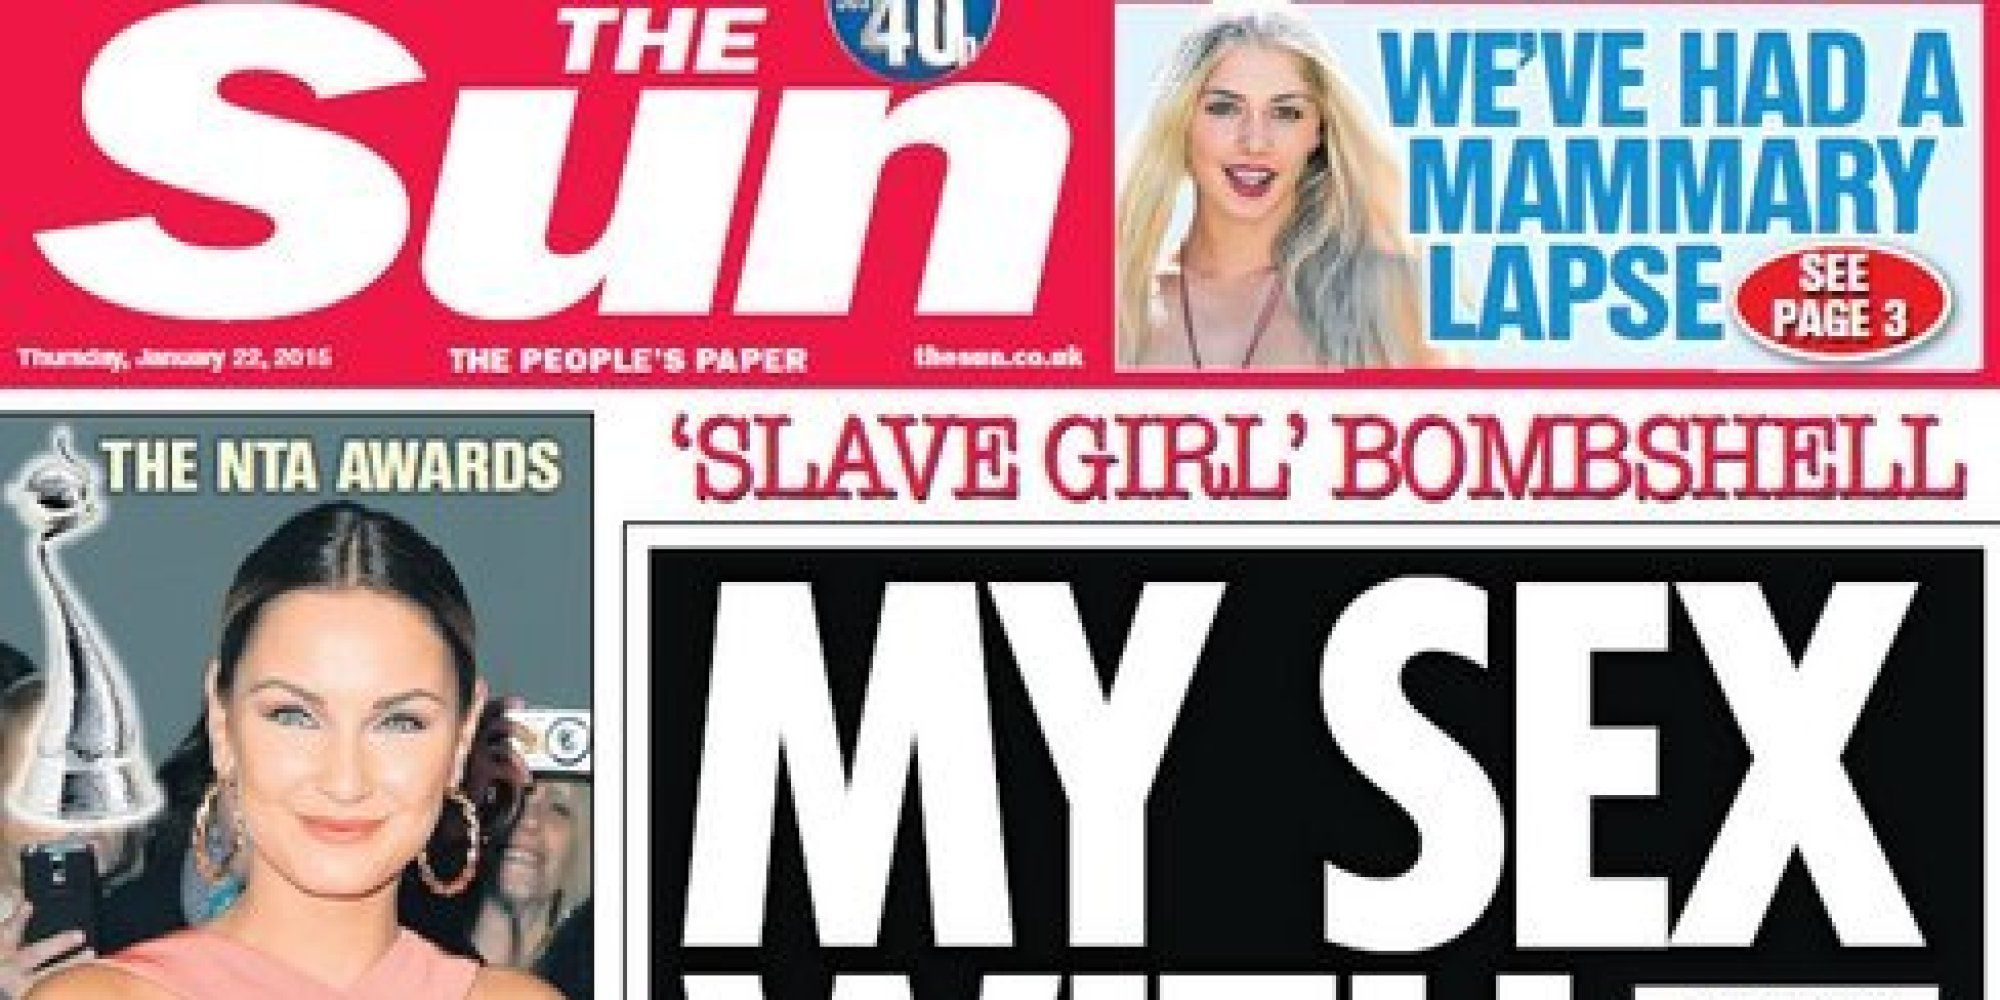 The sun newspaper page 3 girl